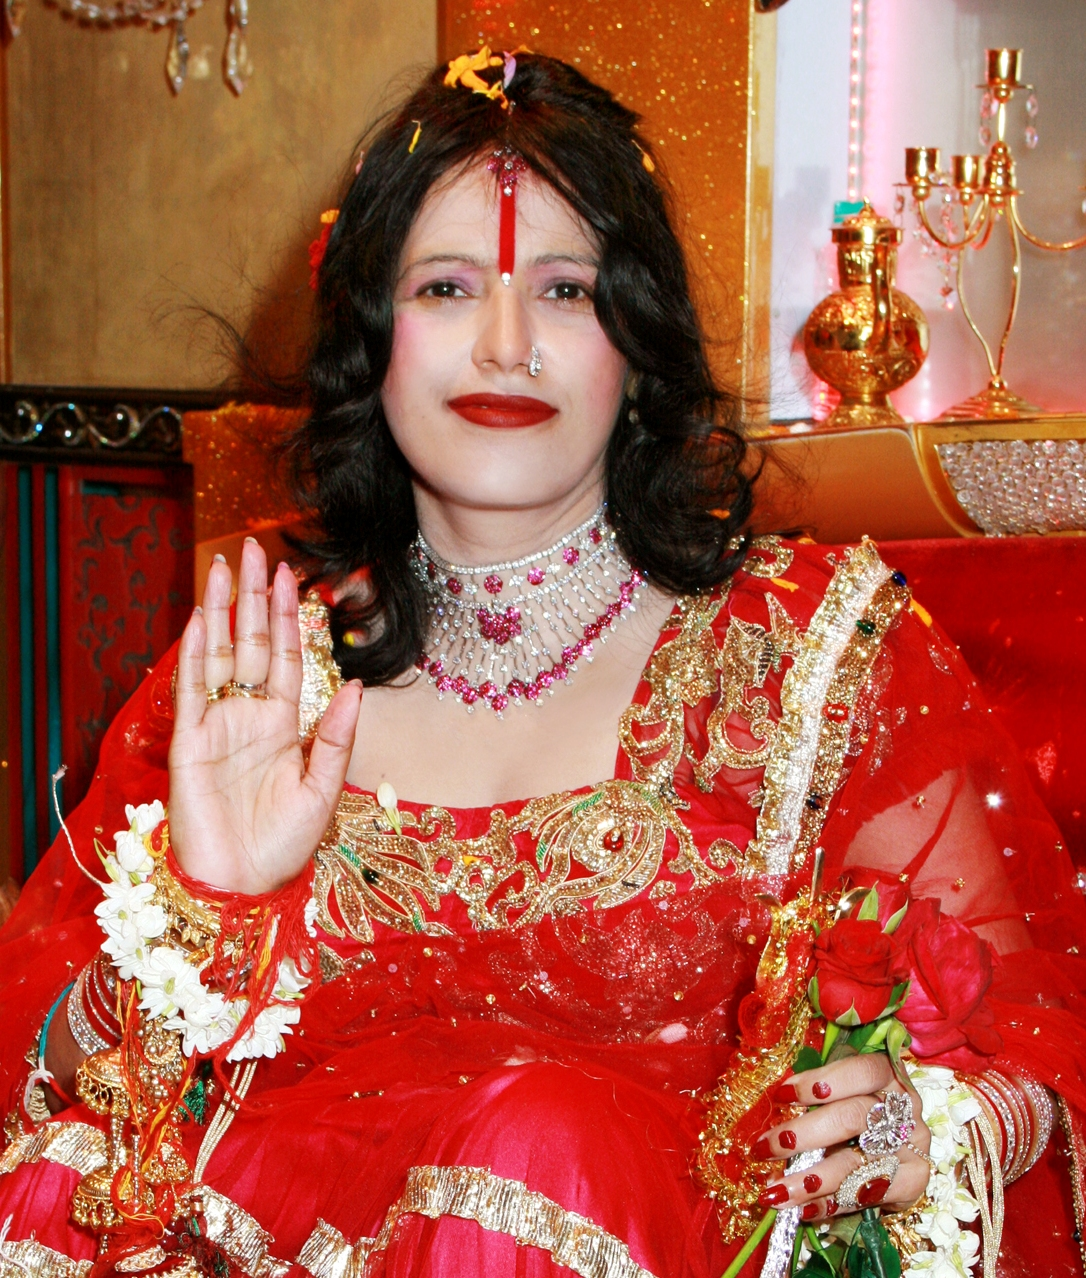 Shri Radhe Maa is addressed as Devi Ma by all her devotees including ...